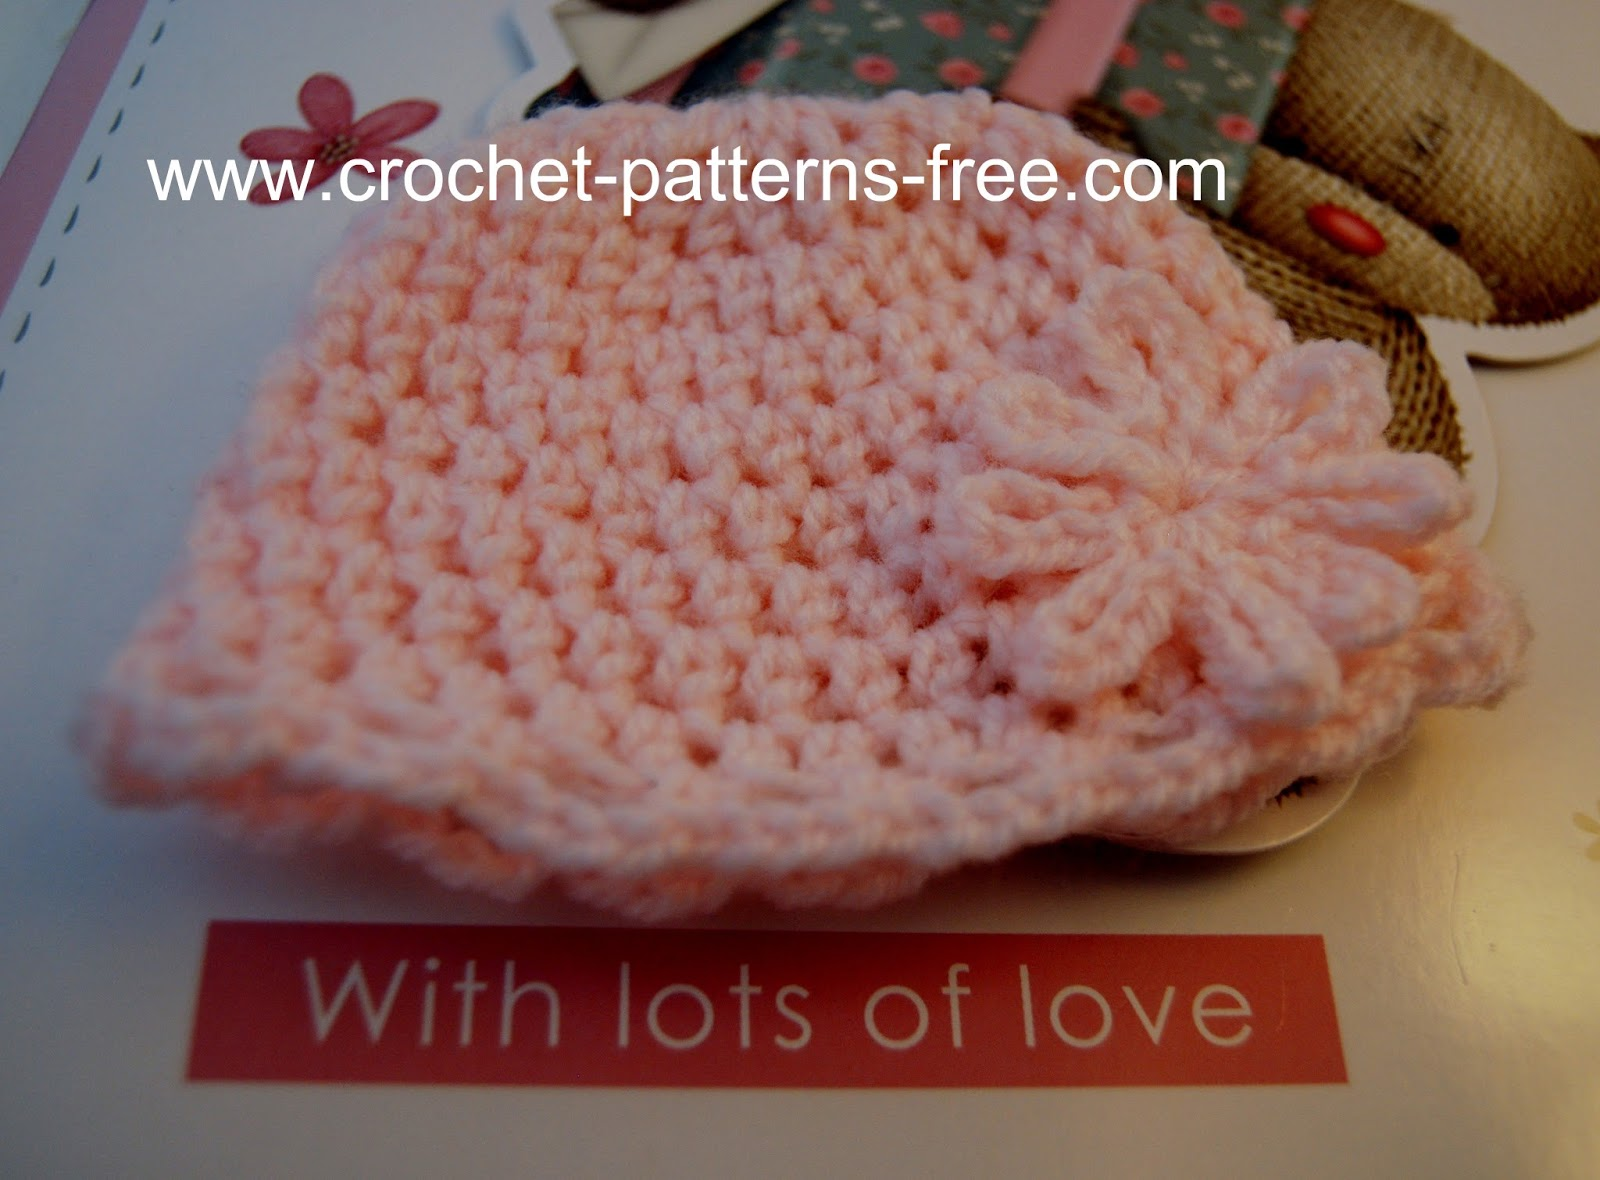 FREE CROCHET PREEMIE HAT PATTERN - Crochet - Learn How to Crochet